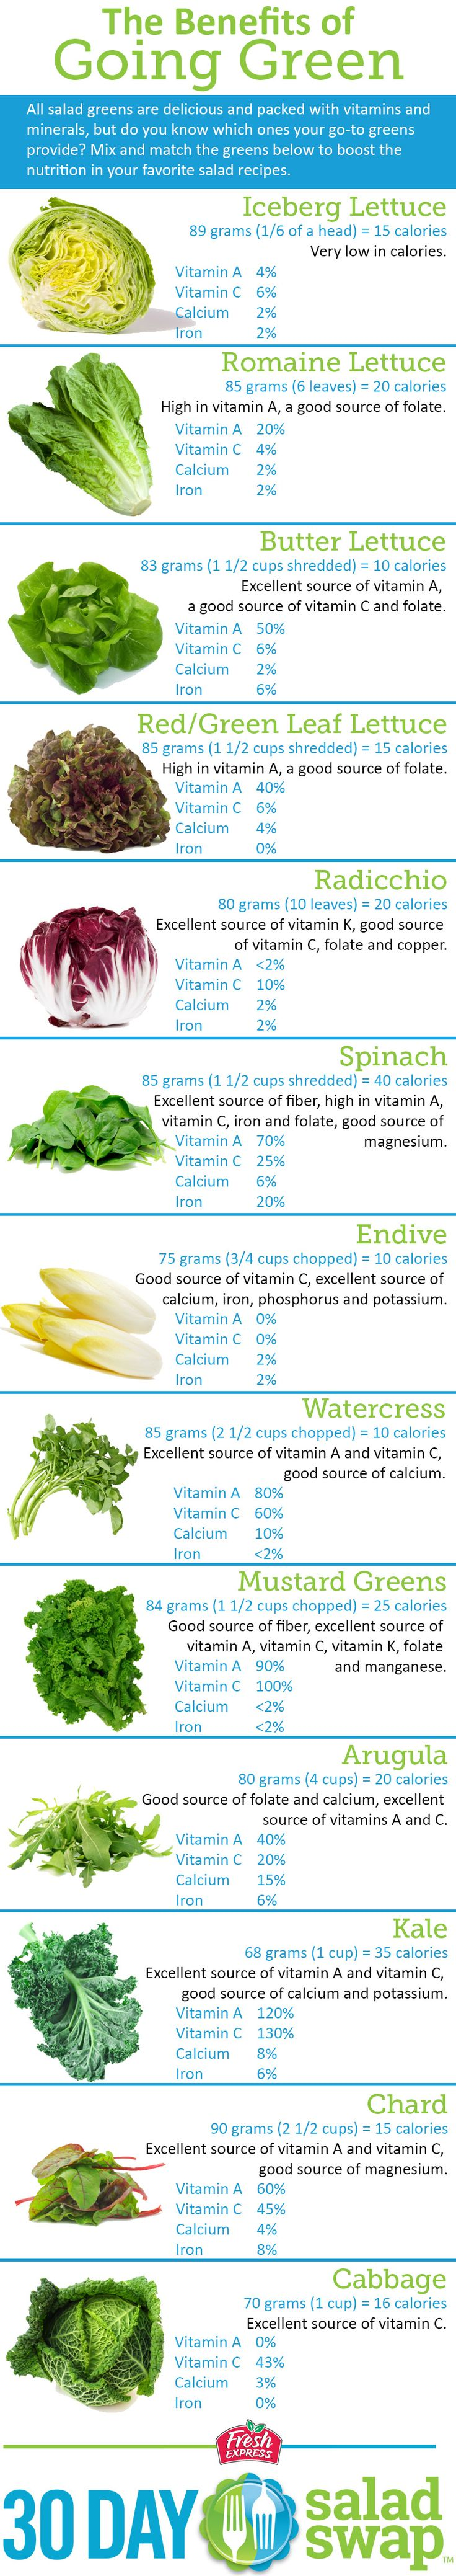 The Benefits of Going Green. Learn about the health benefits of various greens. #dietplans #diettips